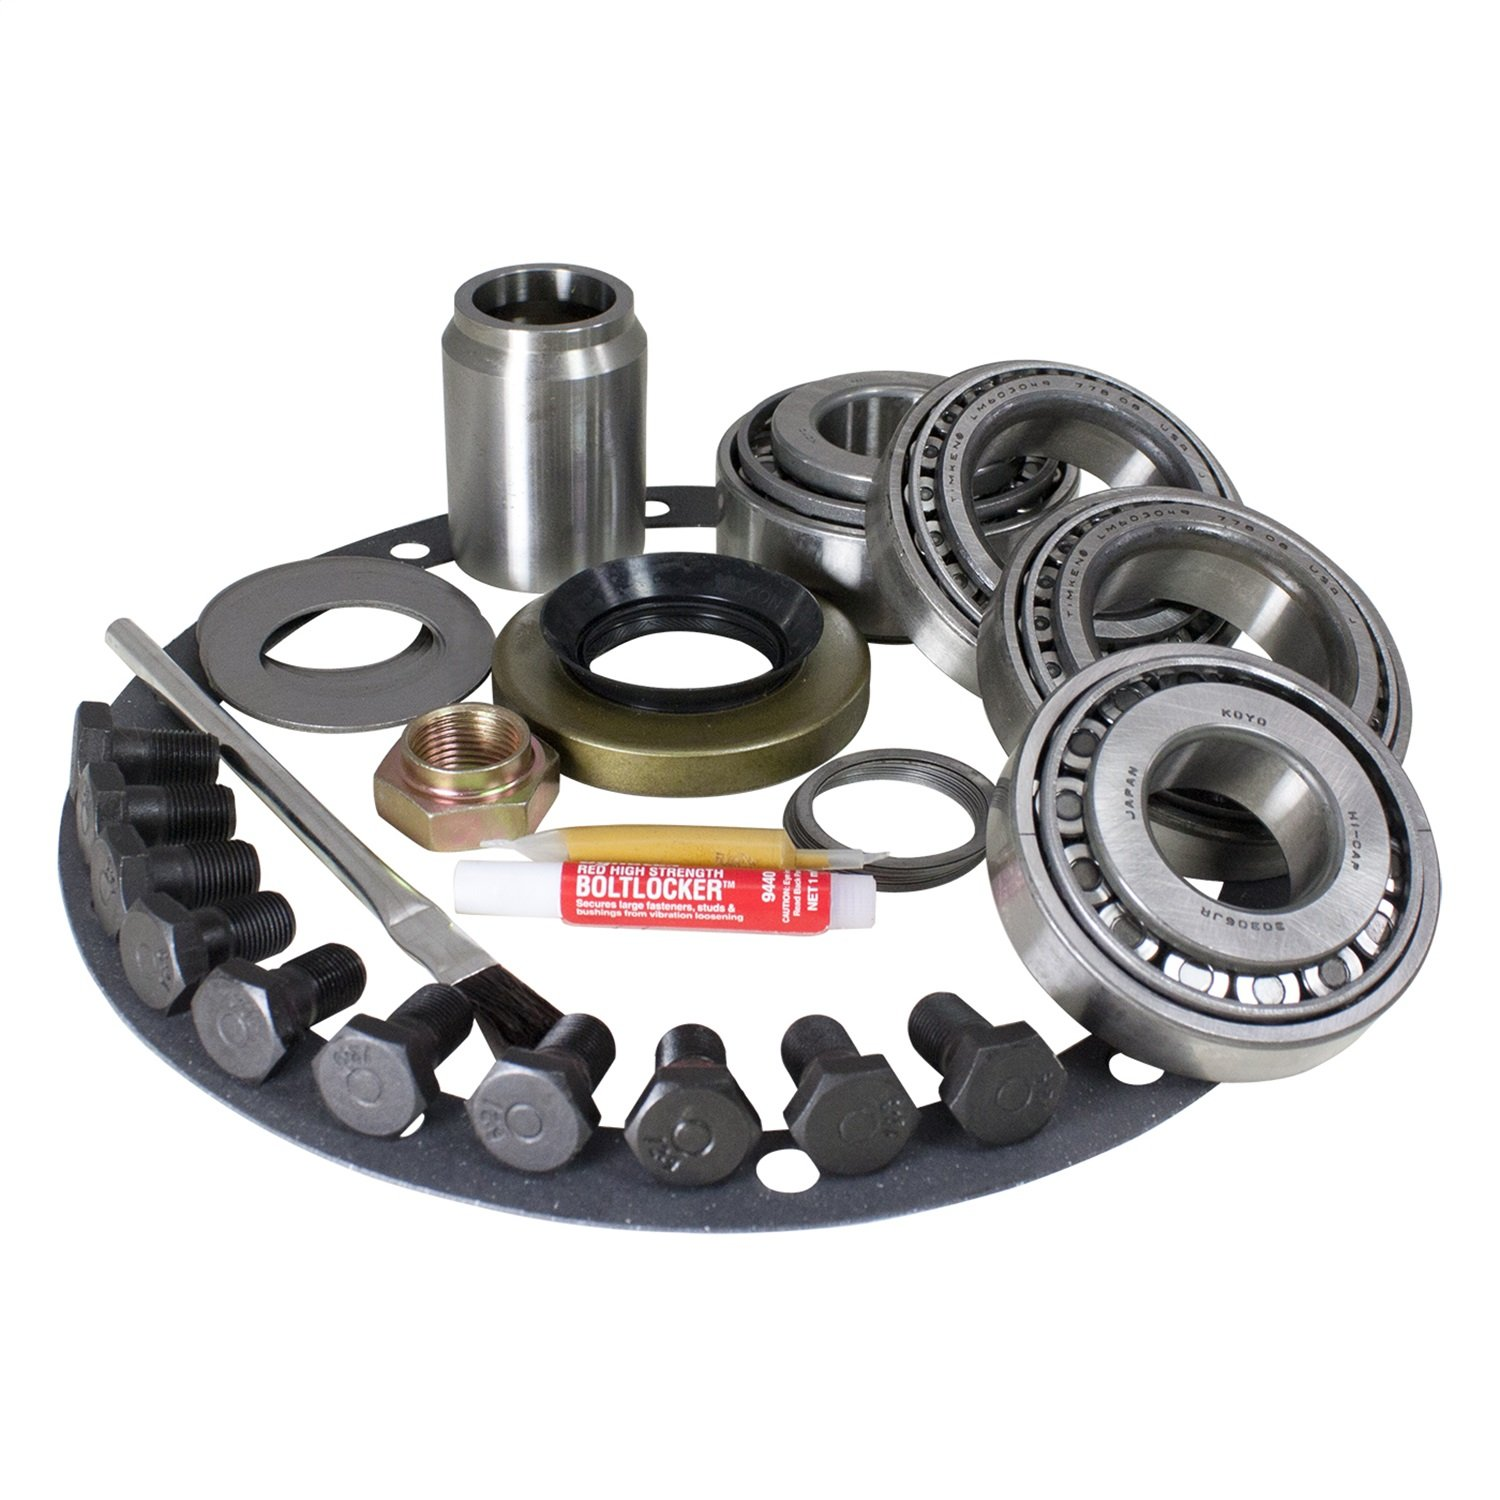 USA Standard Gear (ZK TV6-SPC) Master Overhaul Kit for Toyota V6/Turbo 4 differential by USA Standard Gear